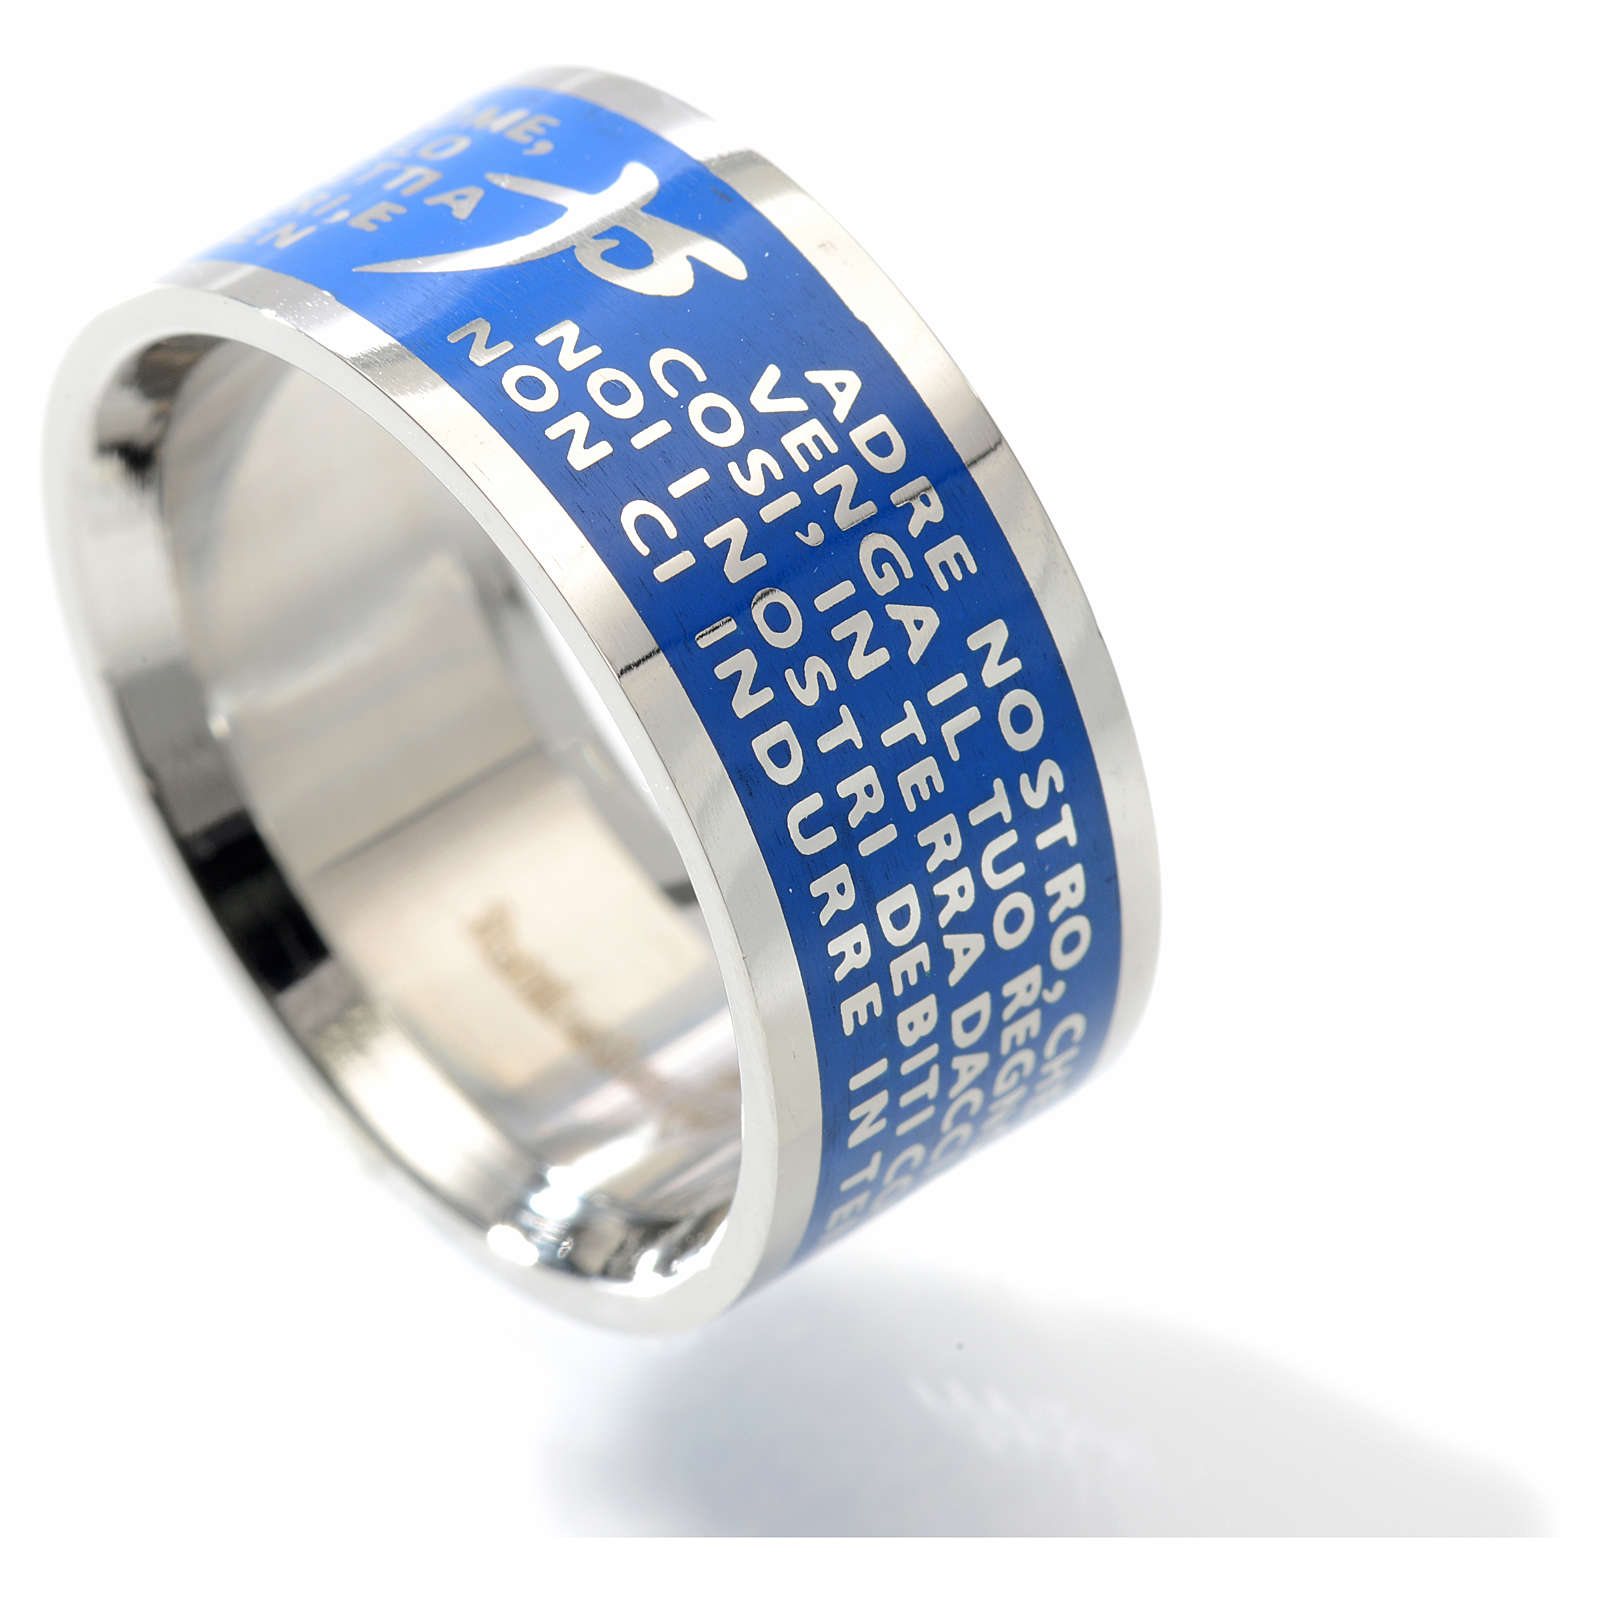 Our Father prayer ring bleu - stainless steel LUX 3